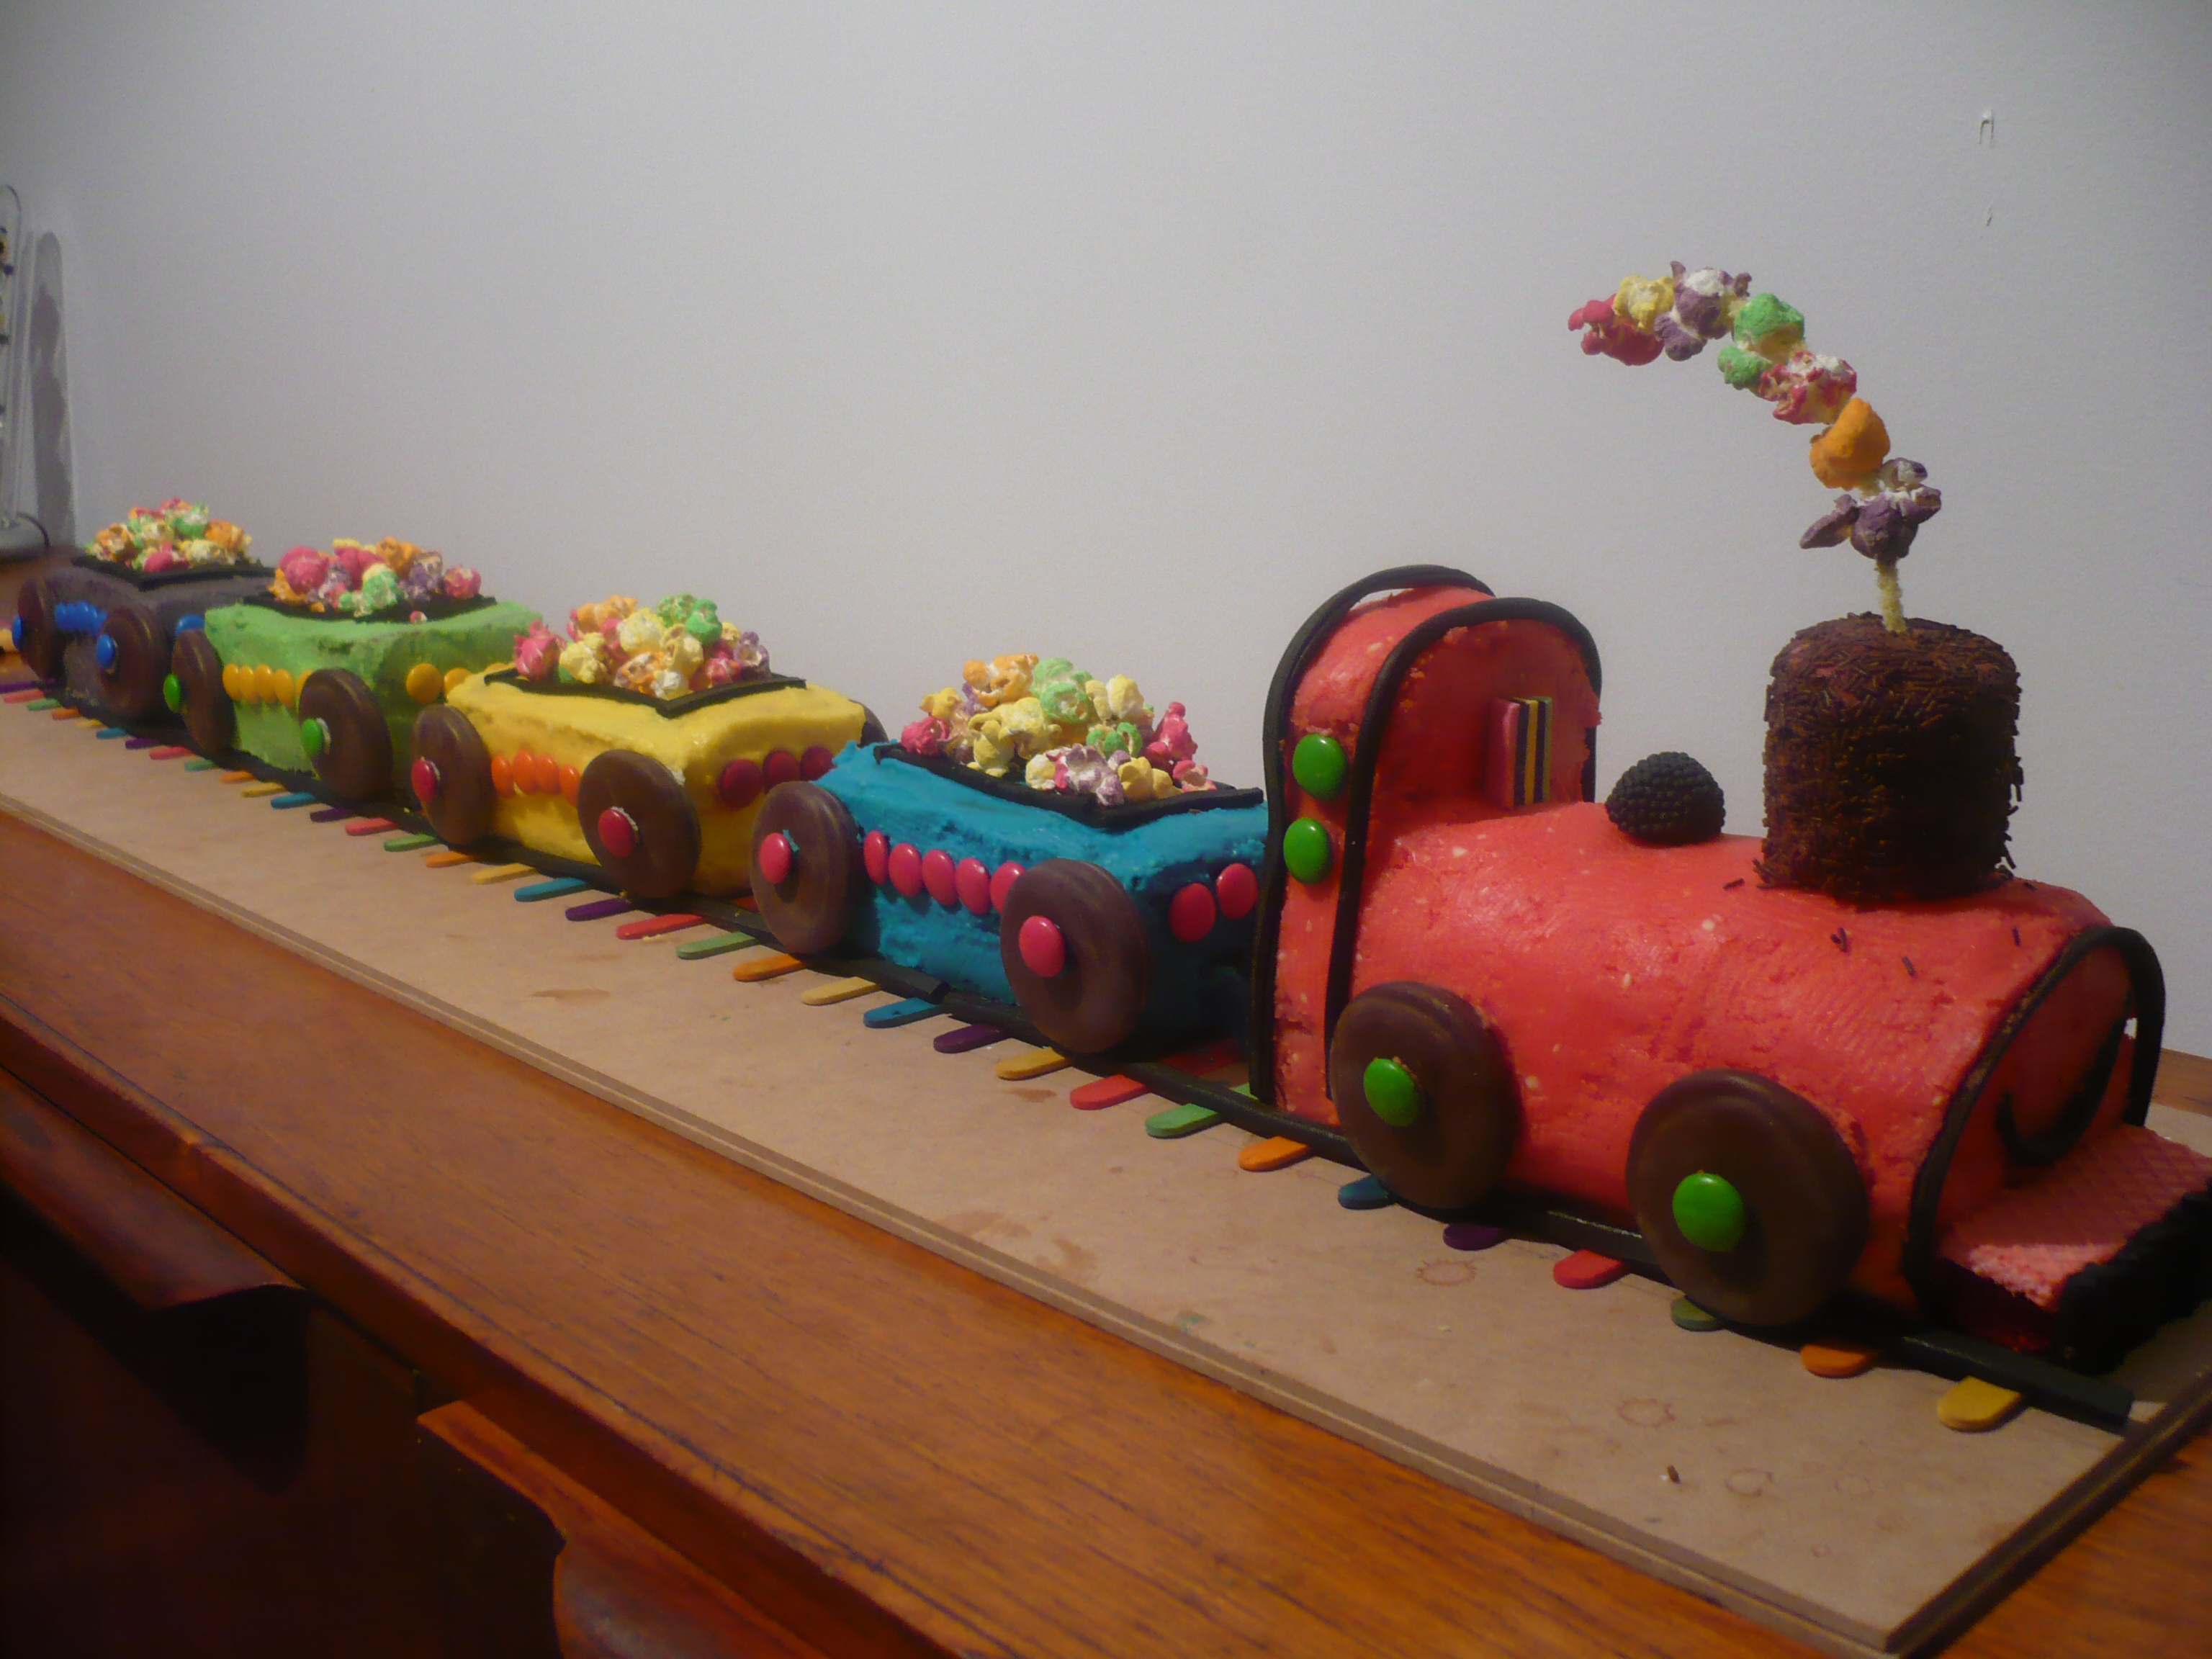 Stupendous File Train Cake From Awwcbcb Jpeg Wikipedia Funny Birthday Cards Online Fluifree Goldxyz